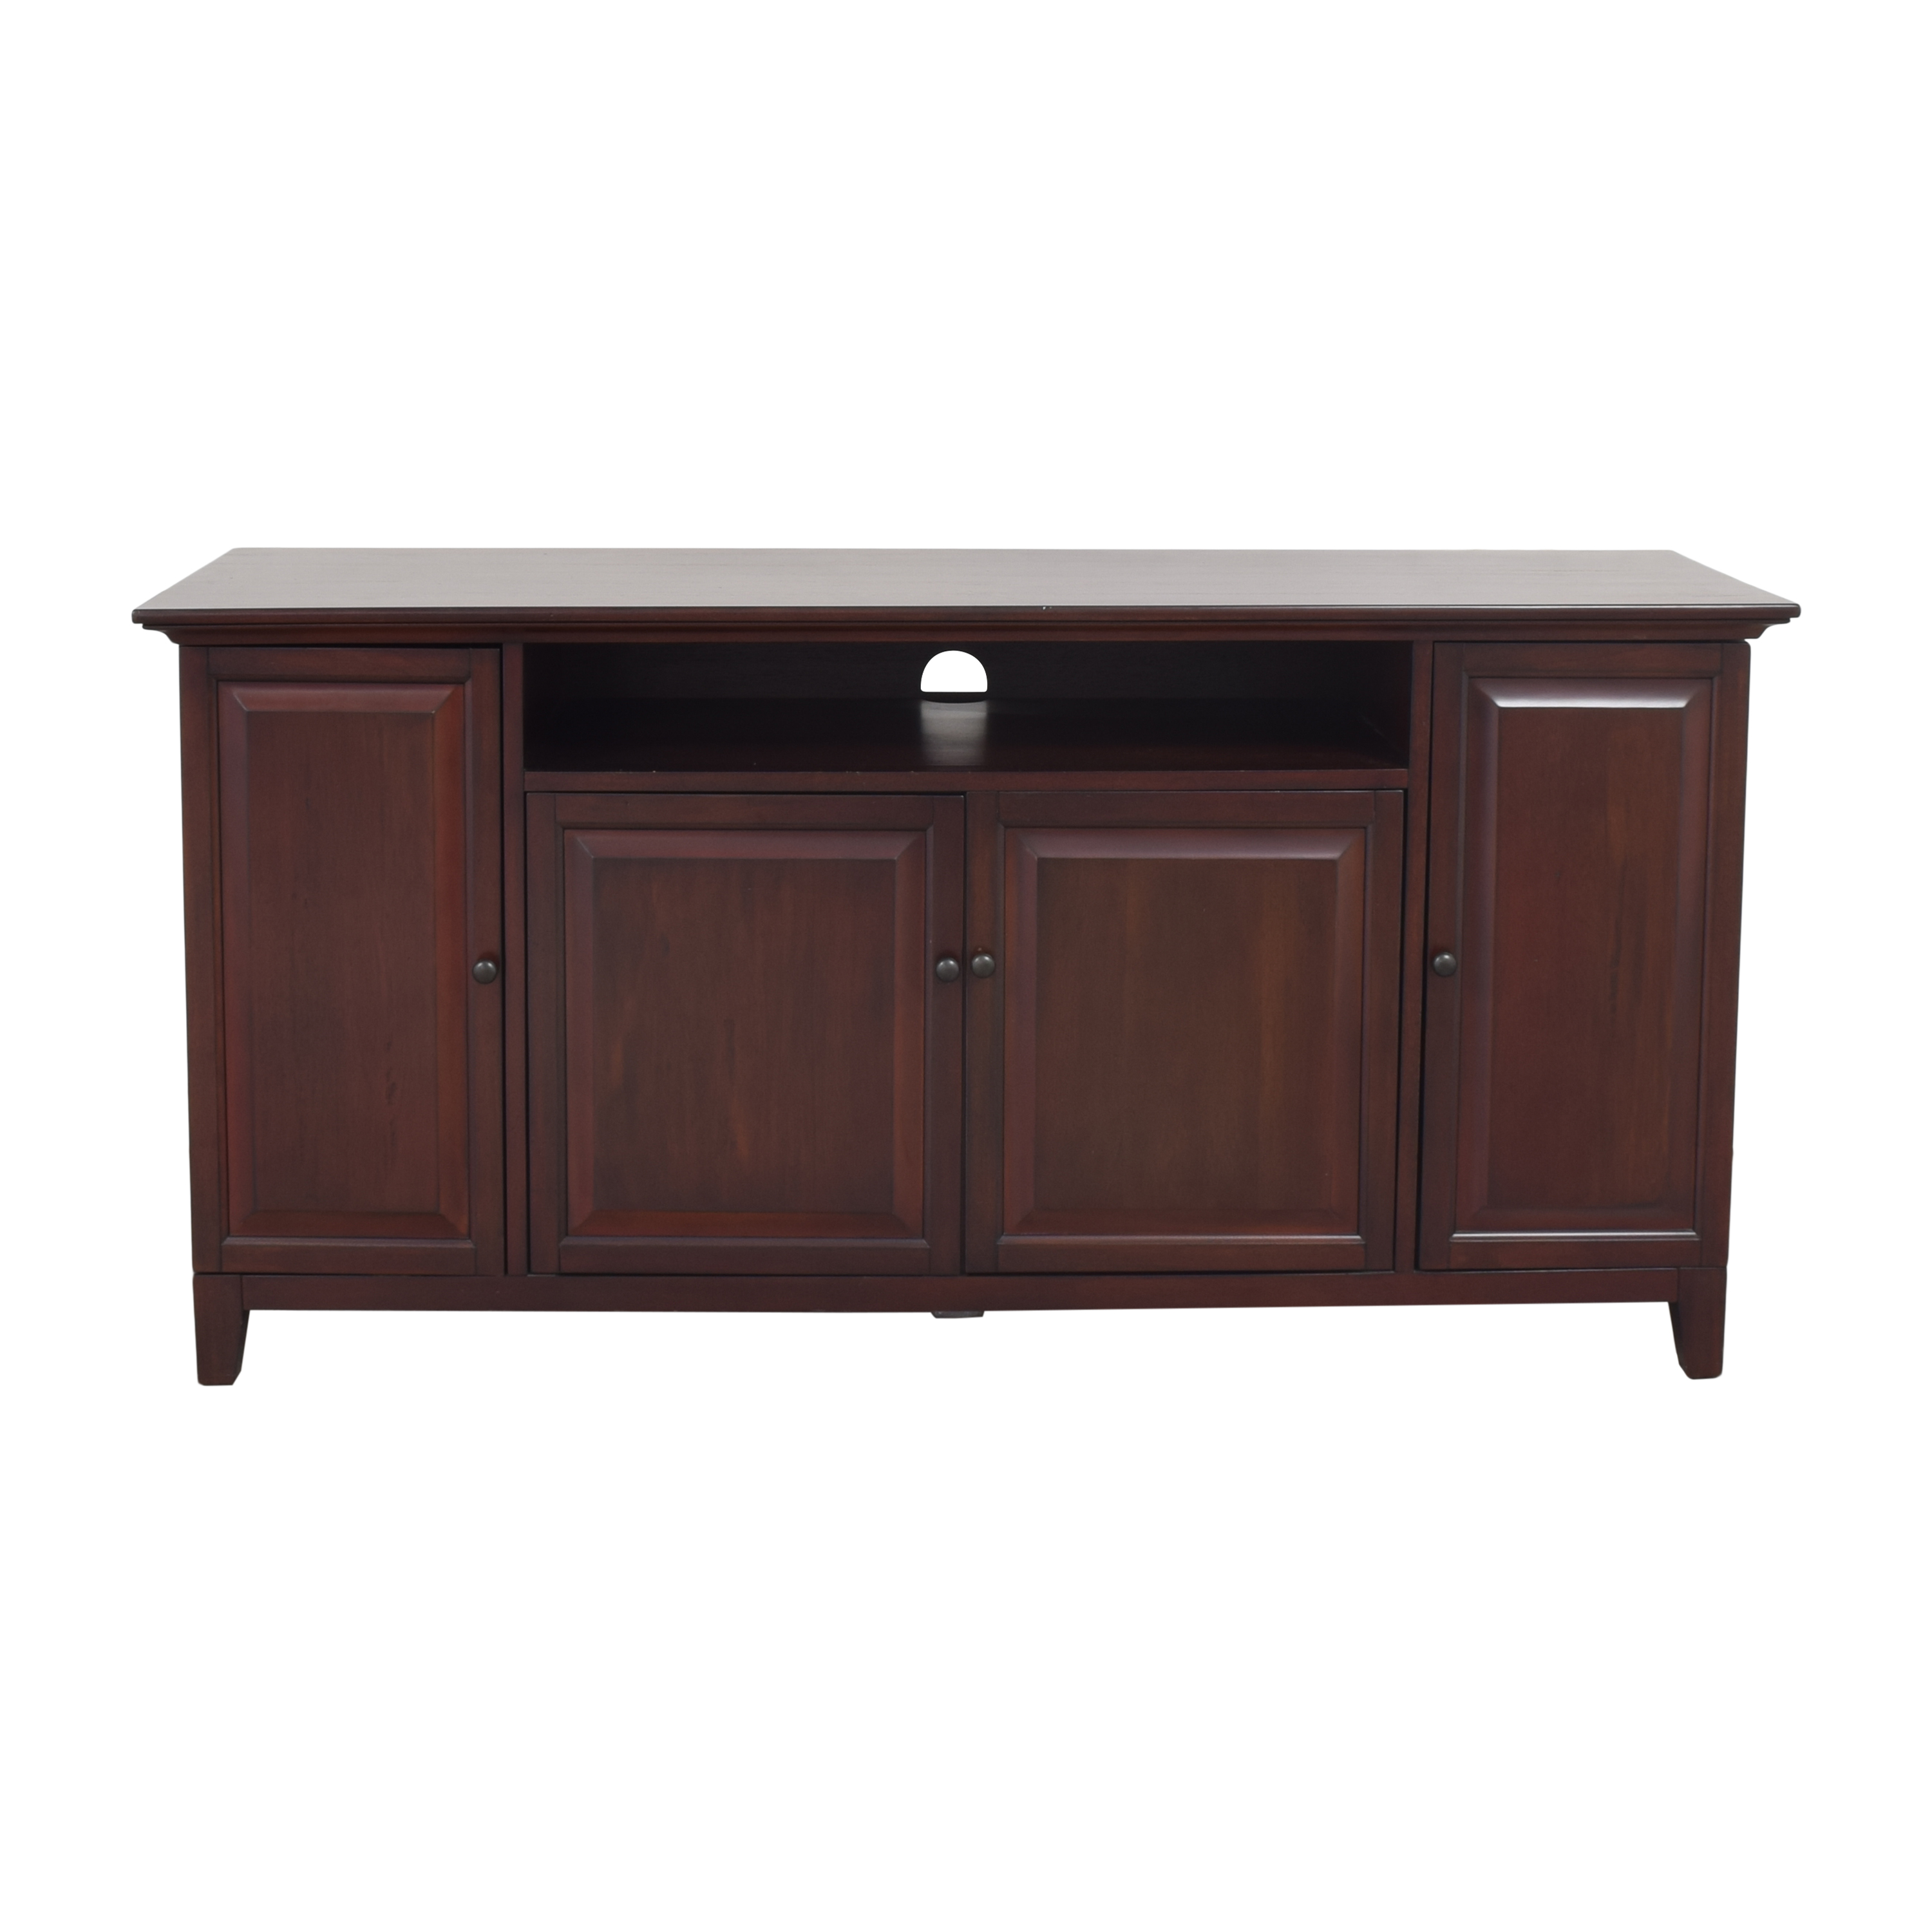 Pottery Barn Pottery Barn Hudson Media Console for sale